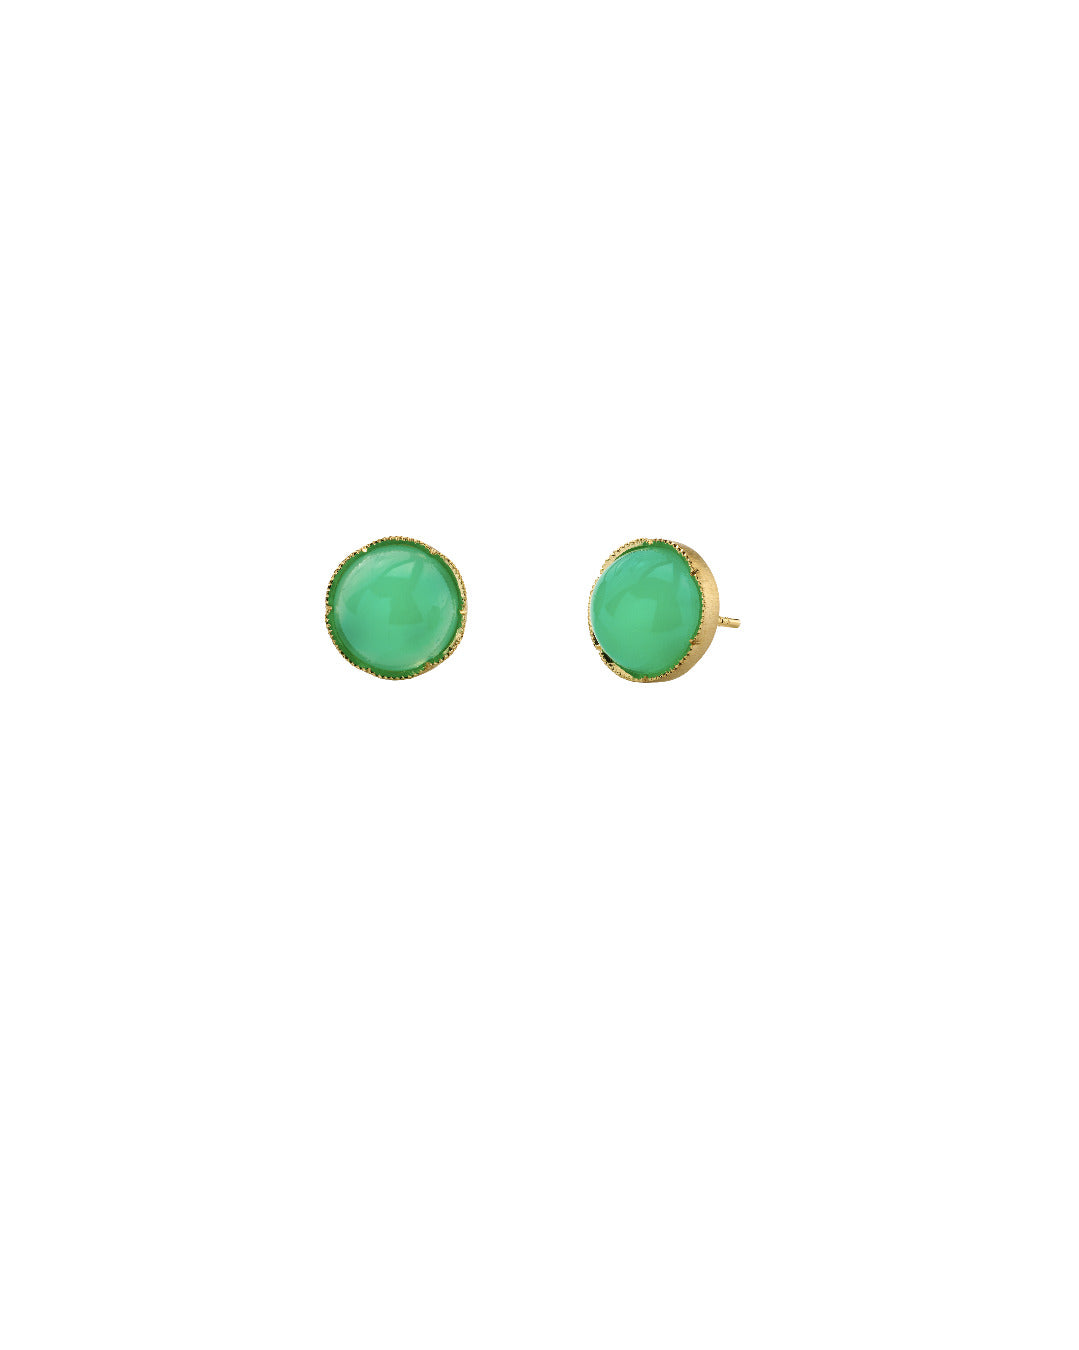 Chrysoprase Stud Earrings